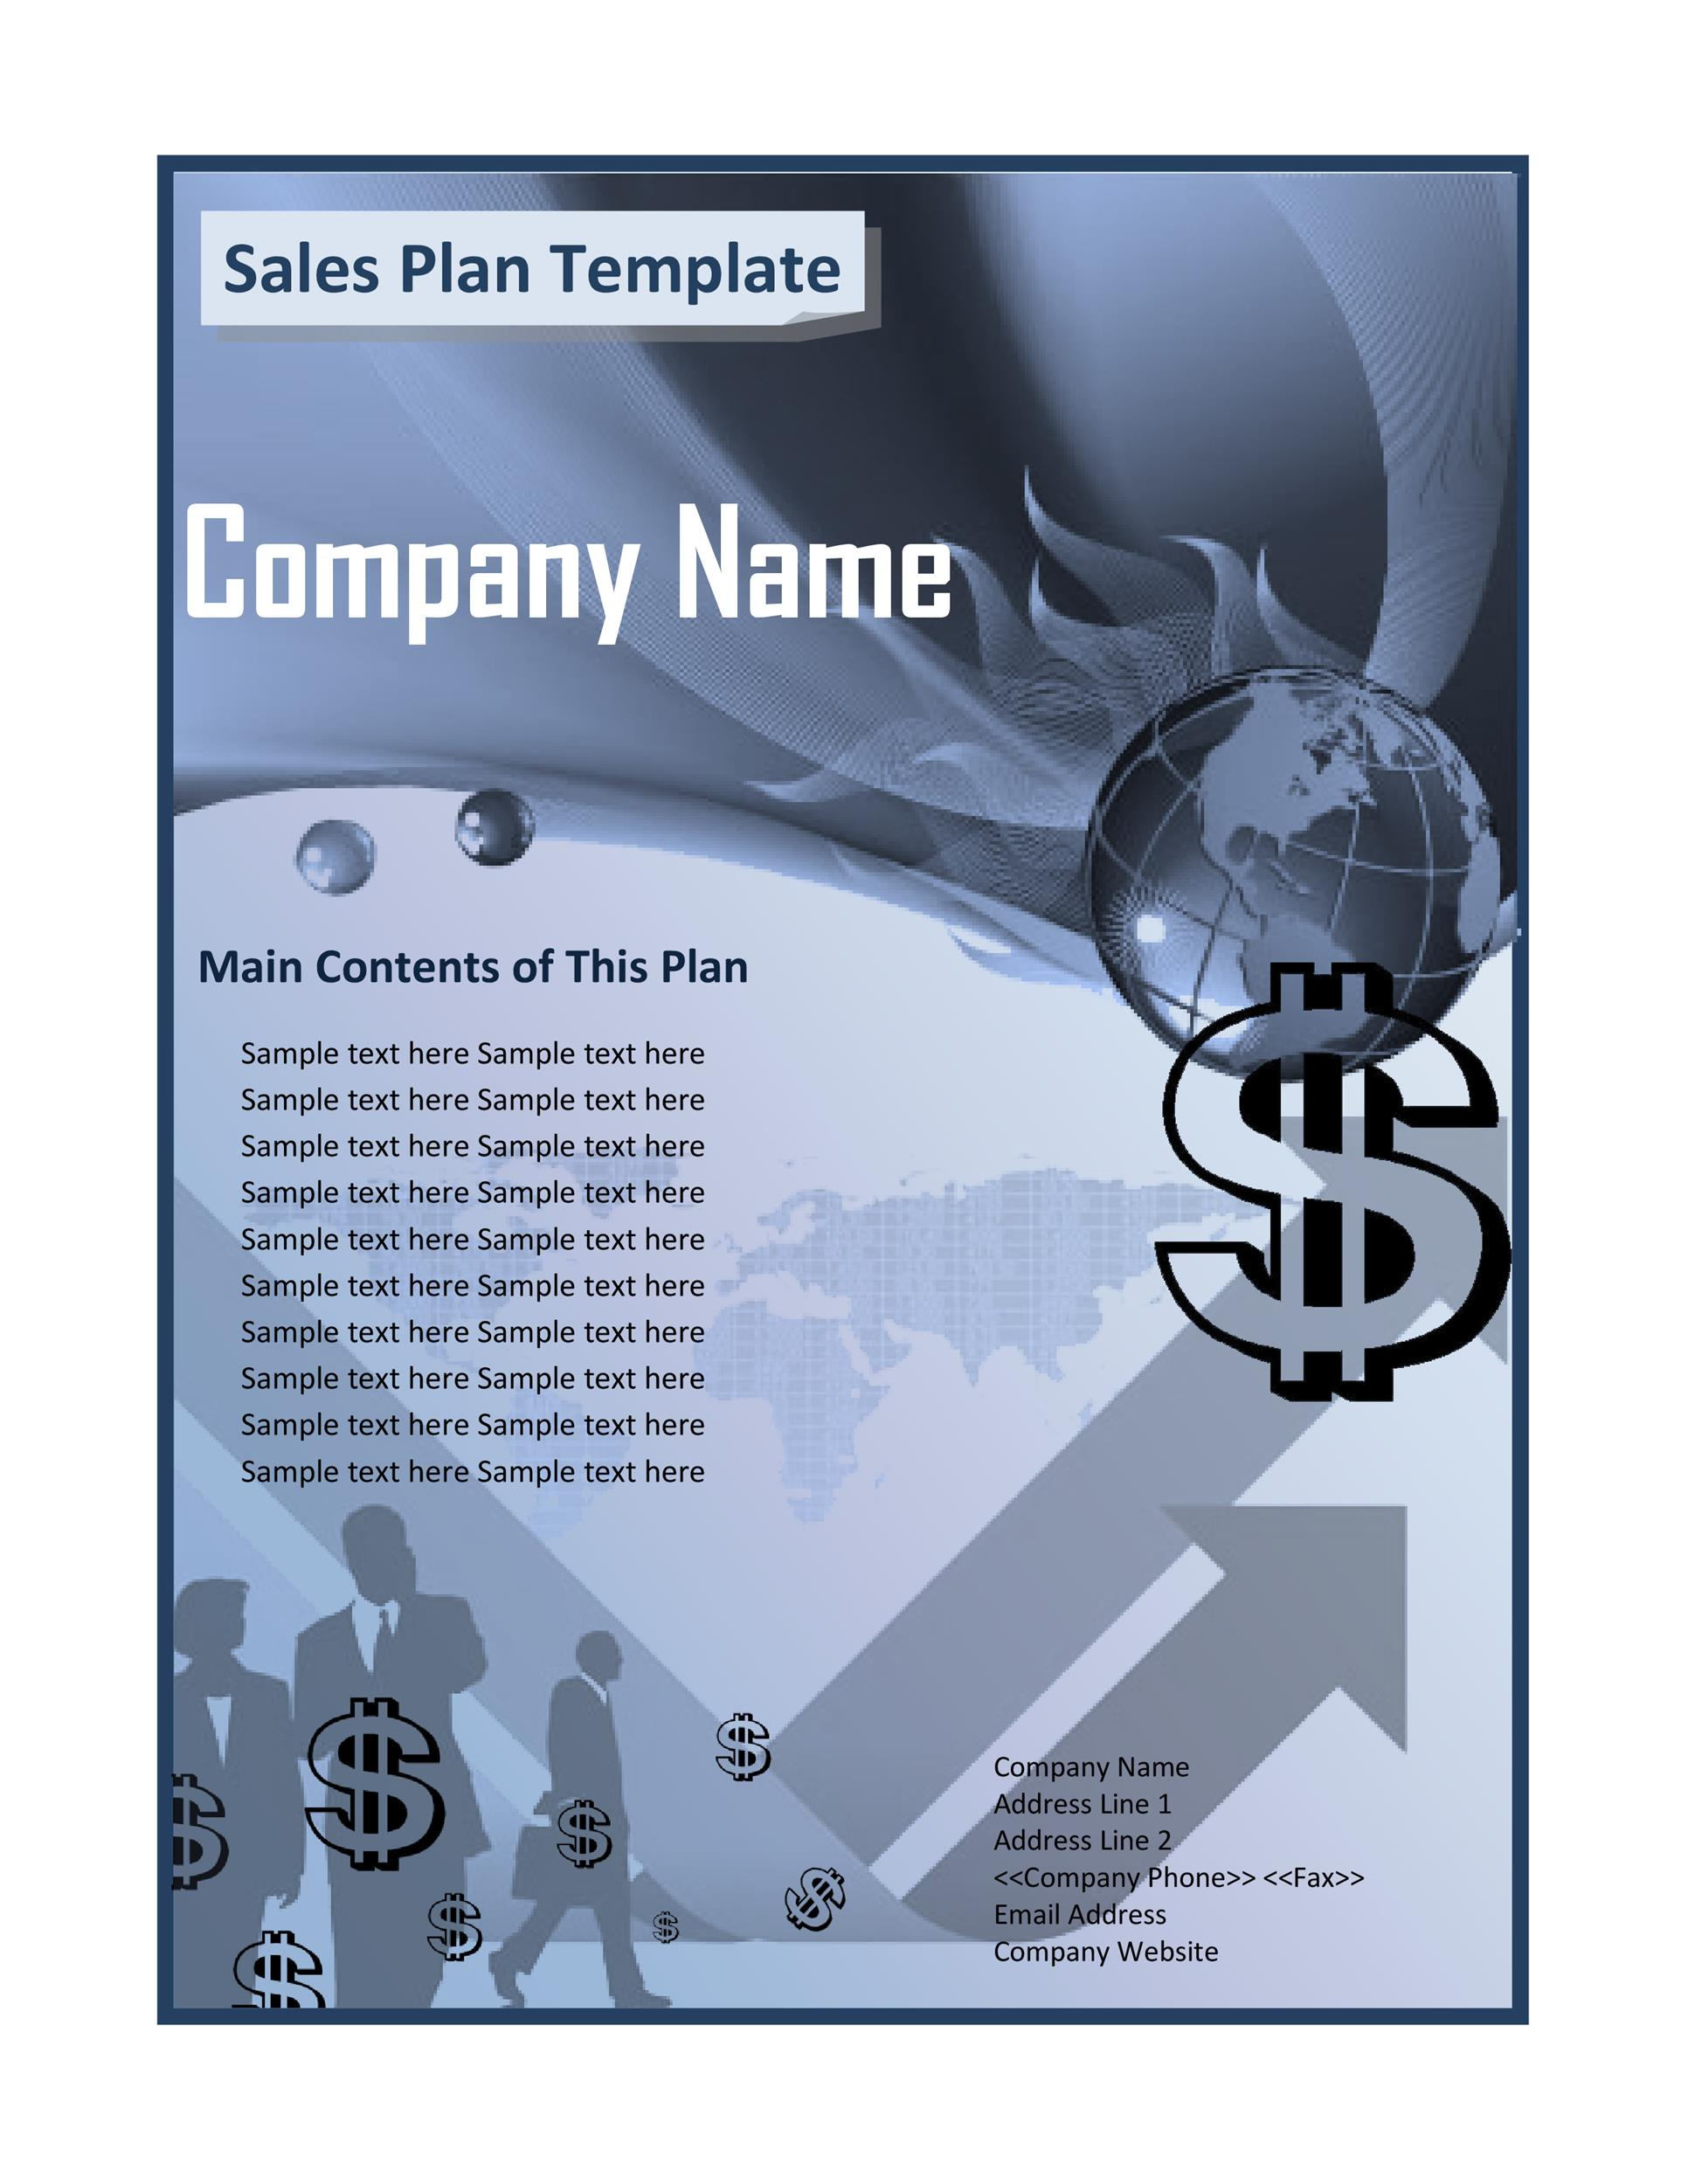 Free Sales Plan Template 21